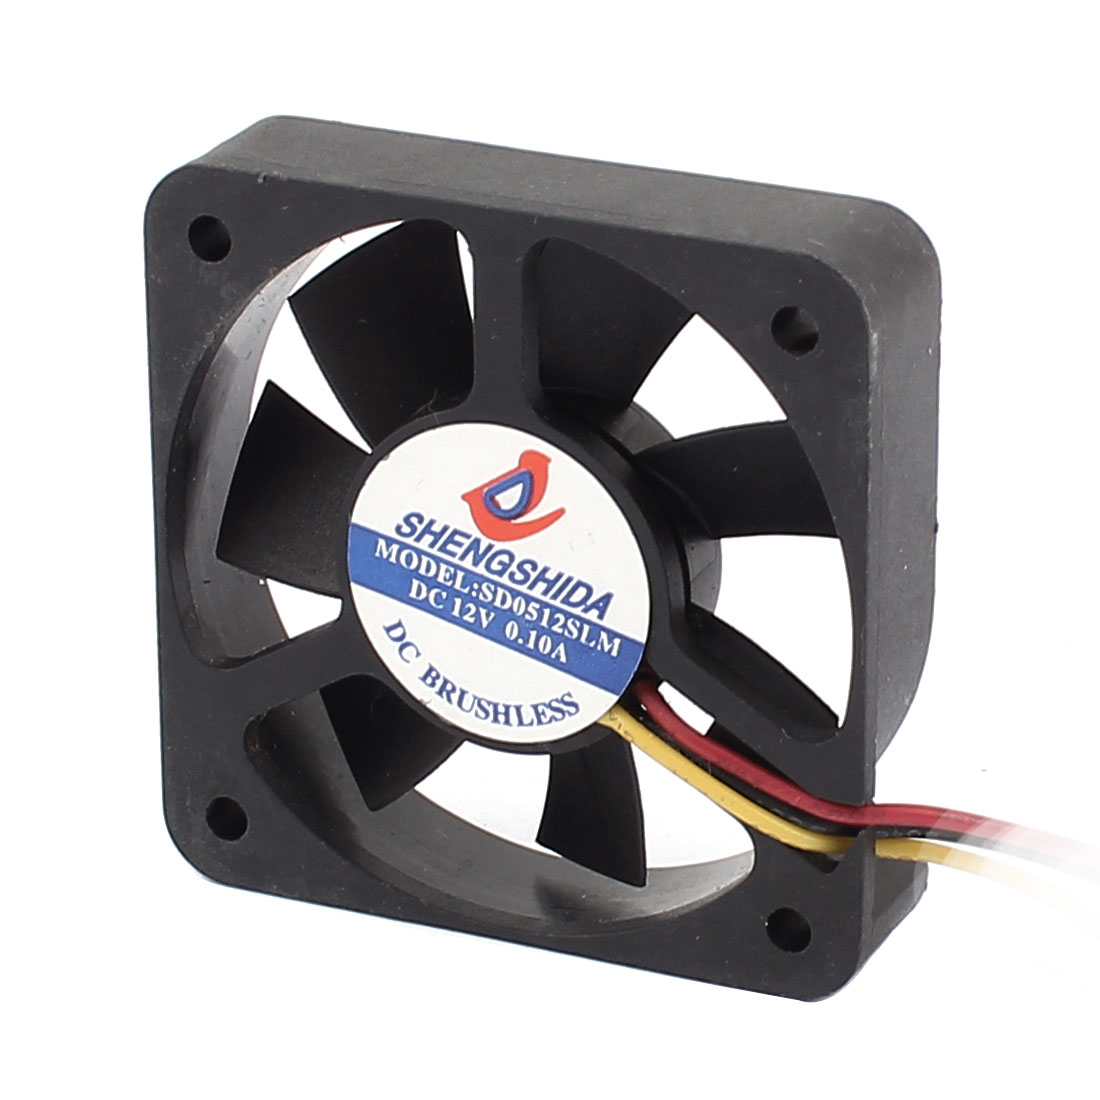 DC 12V 0.1A 3 Terminal Connector PC Case CPU Cooler Cooling Fan 50mm x 12mm